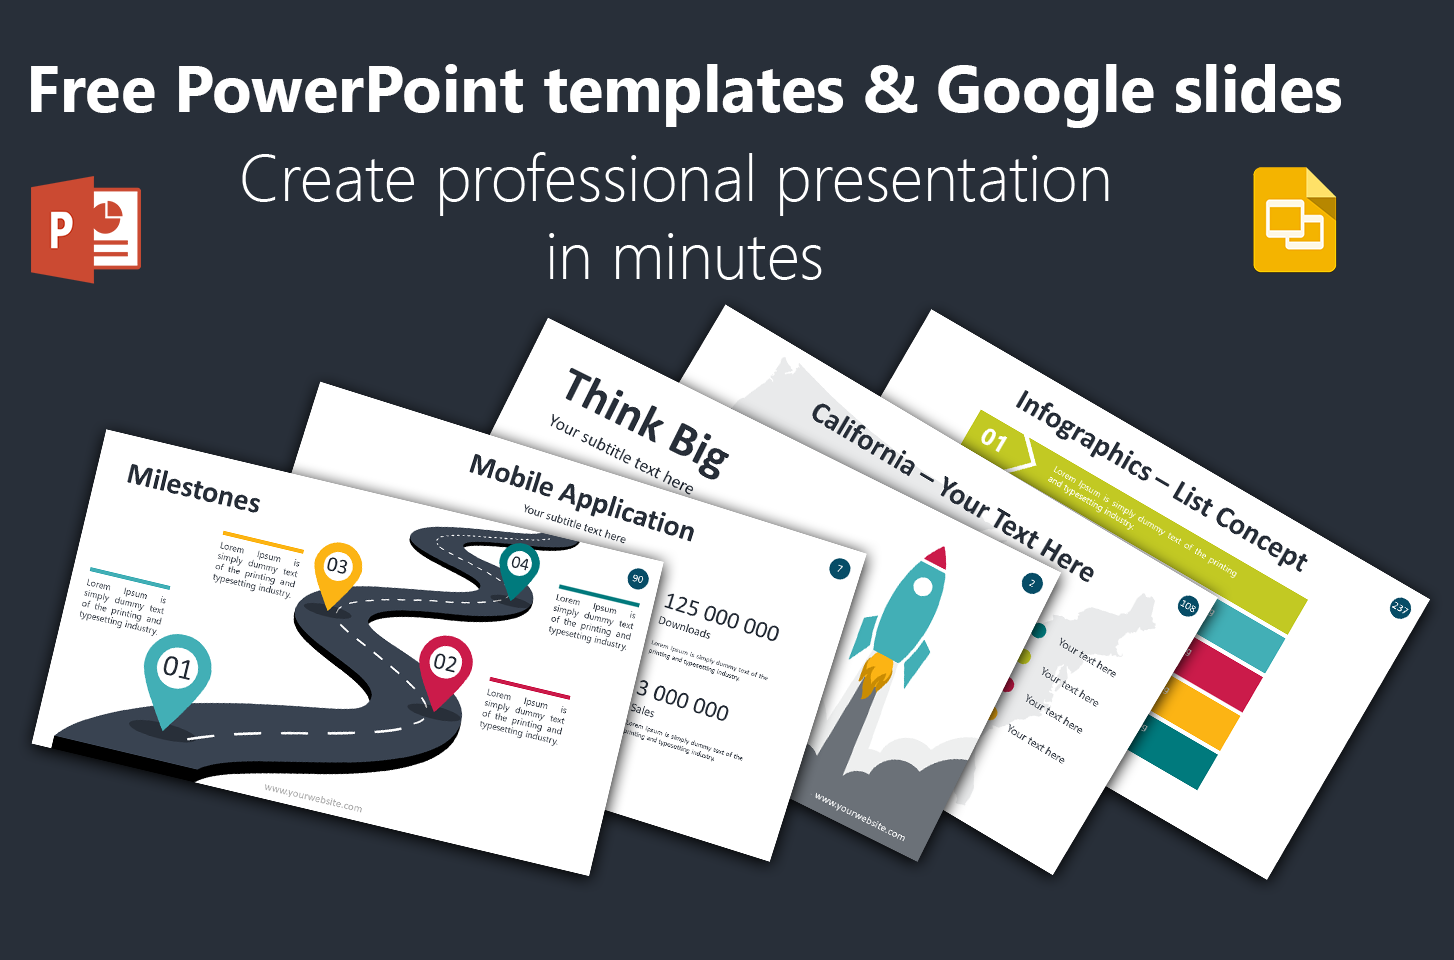 Free PowerPoint templates & Google slides. Create professional presentation  in minutes.